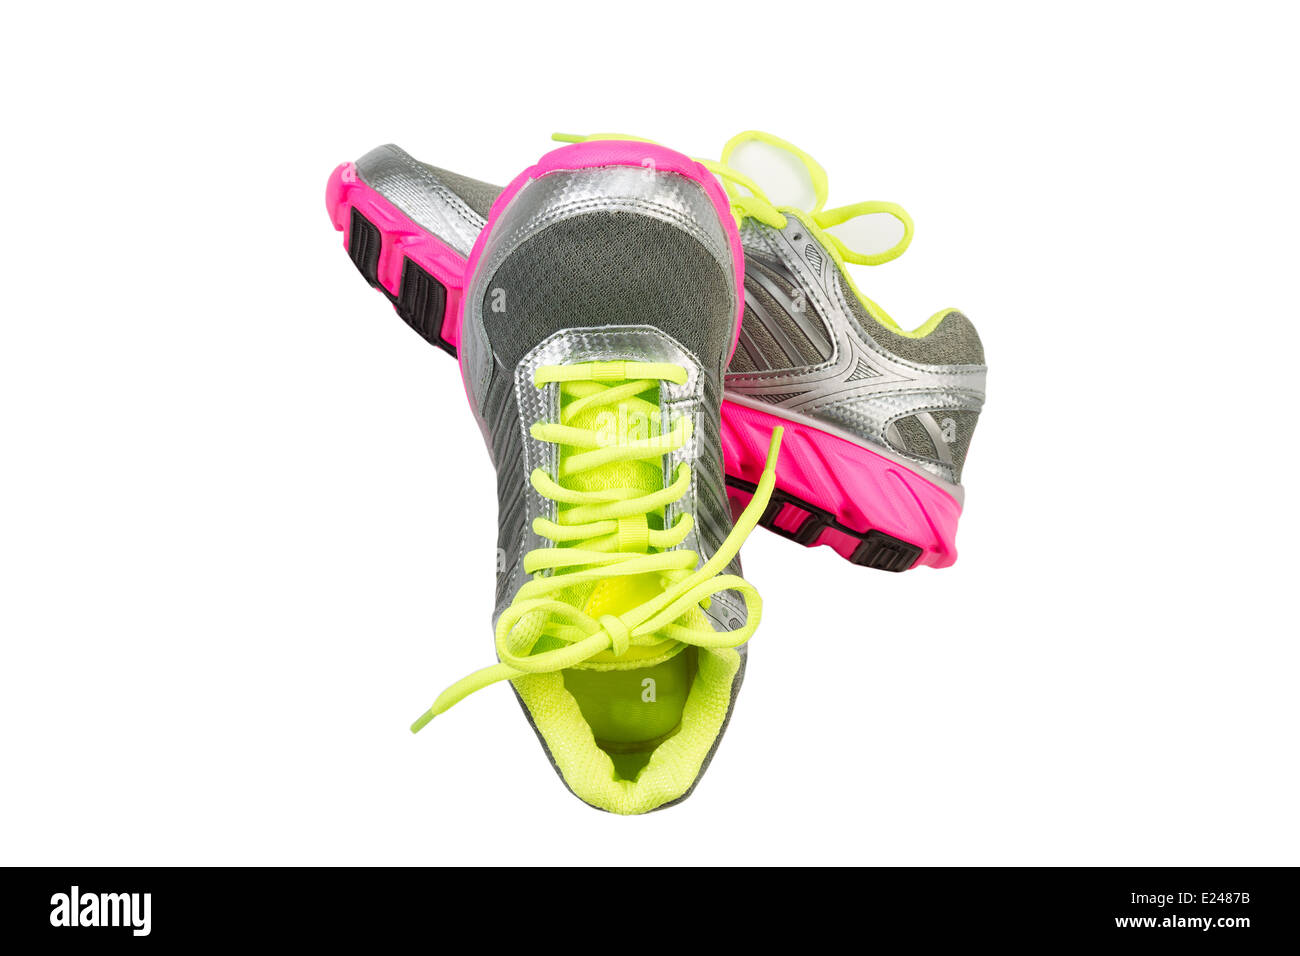 New work out shoes in bright green, silver and pink colors isolated on white - Stock Image